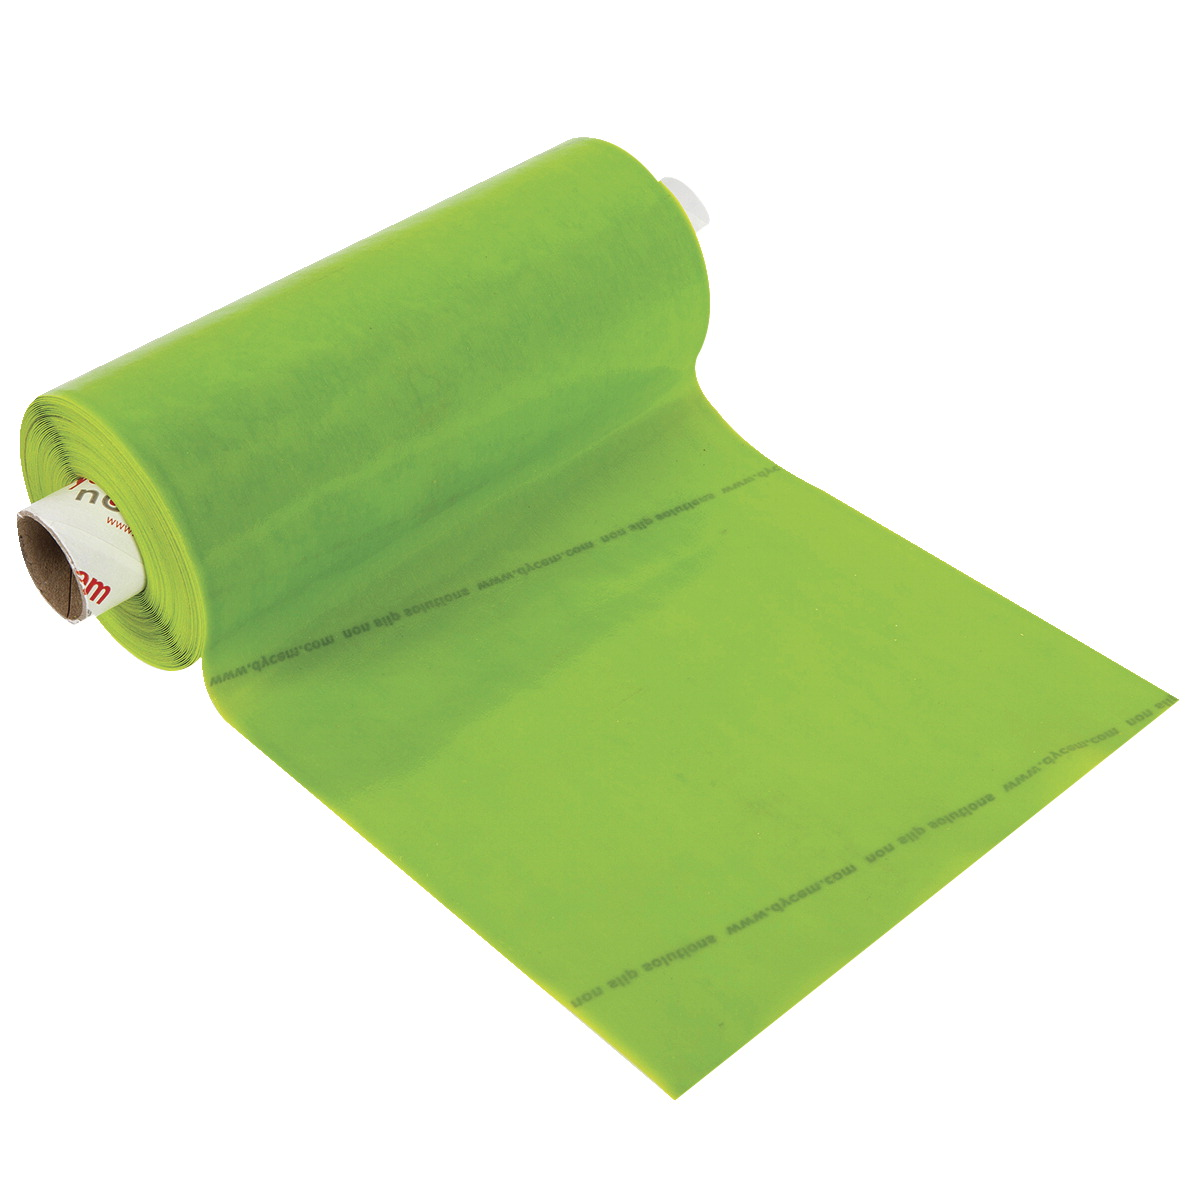 Dycem Non-slip Material Roll, 8 in x 10 yd, Lime - SCHOOL SPECIALTY ...